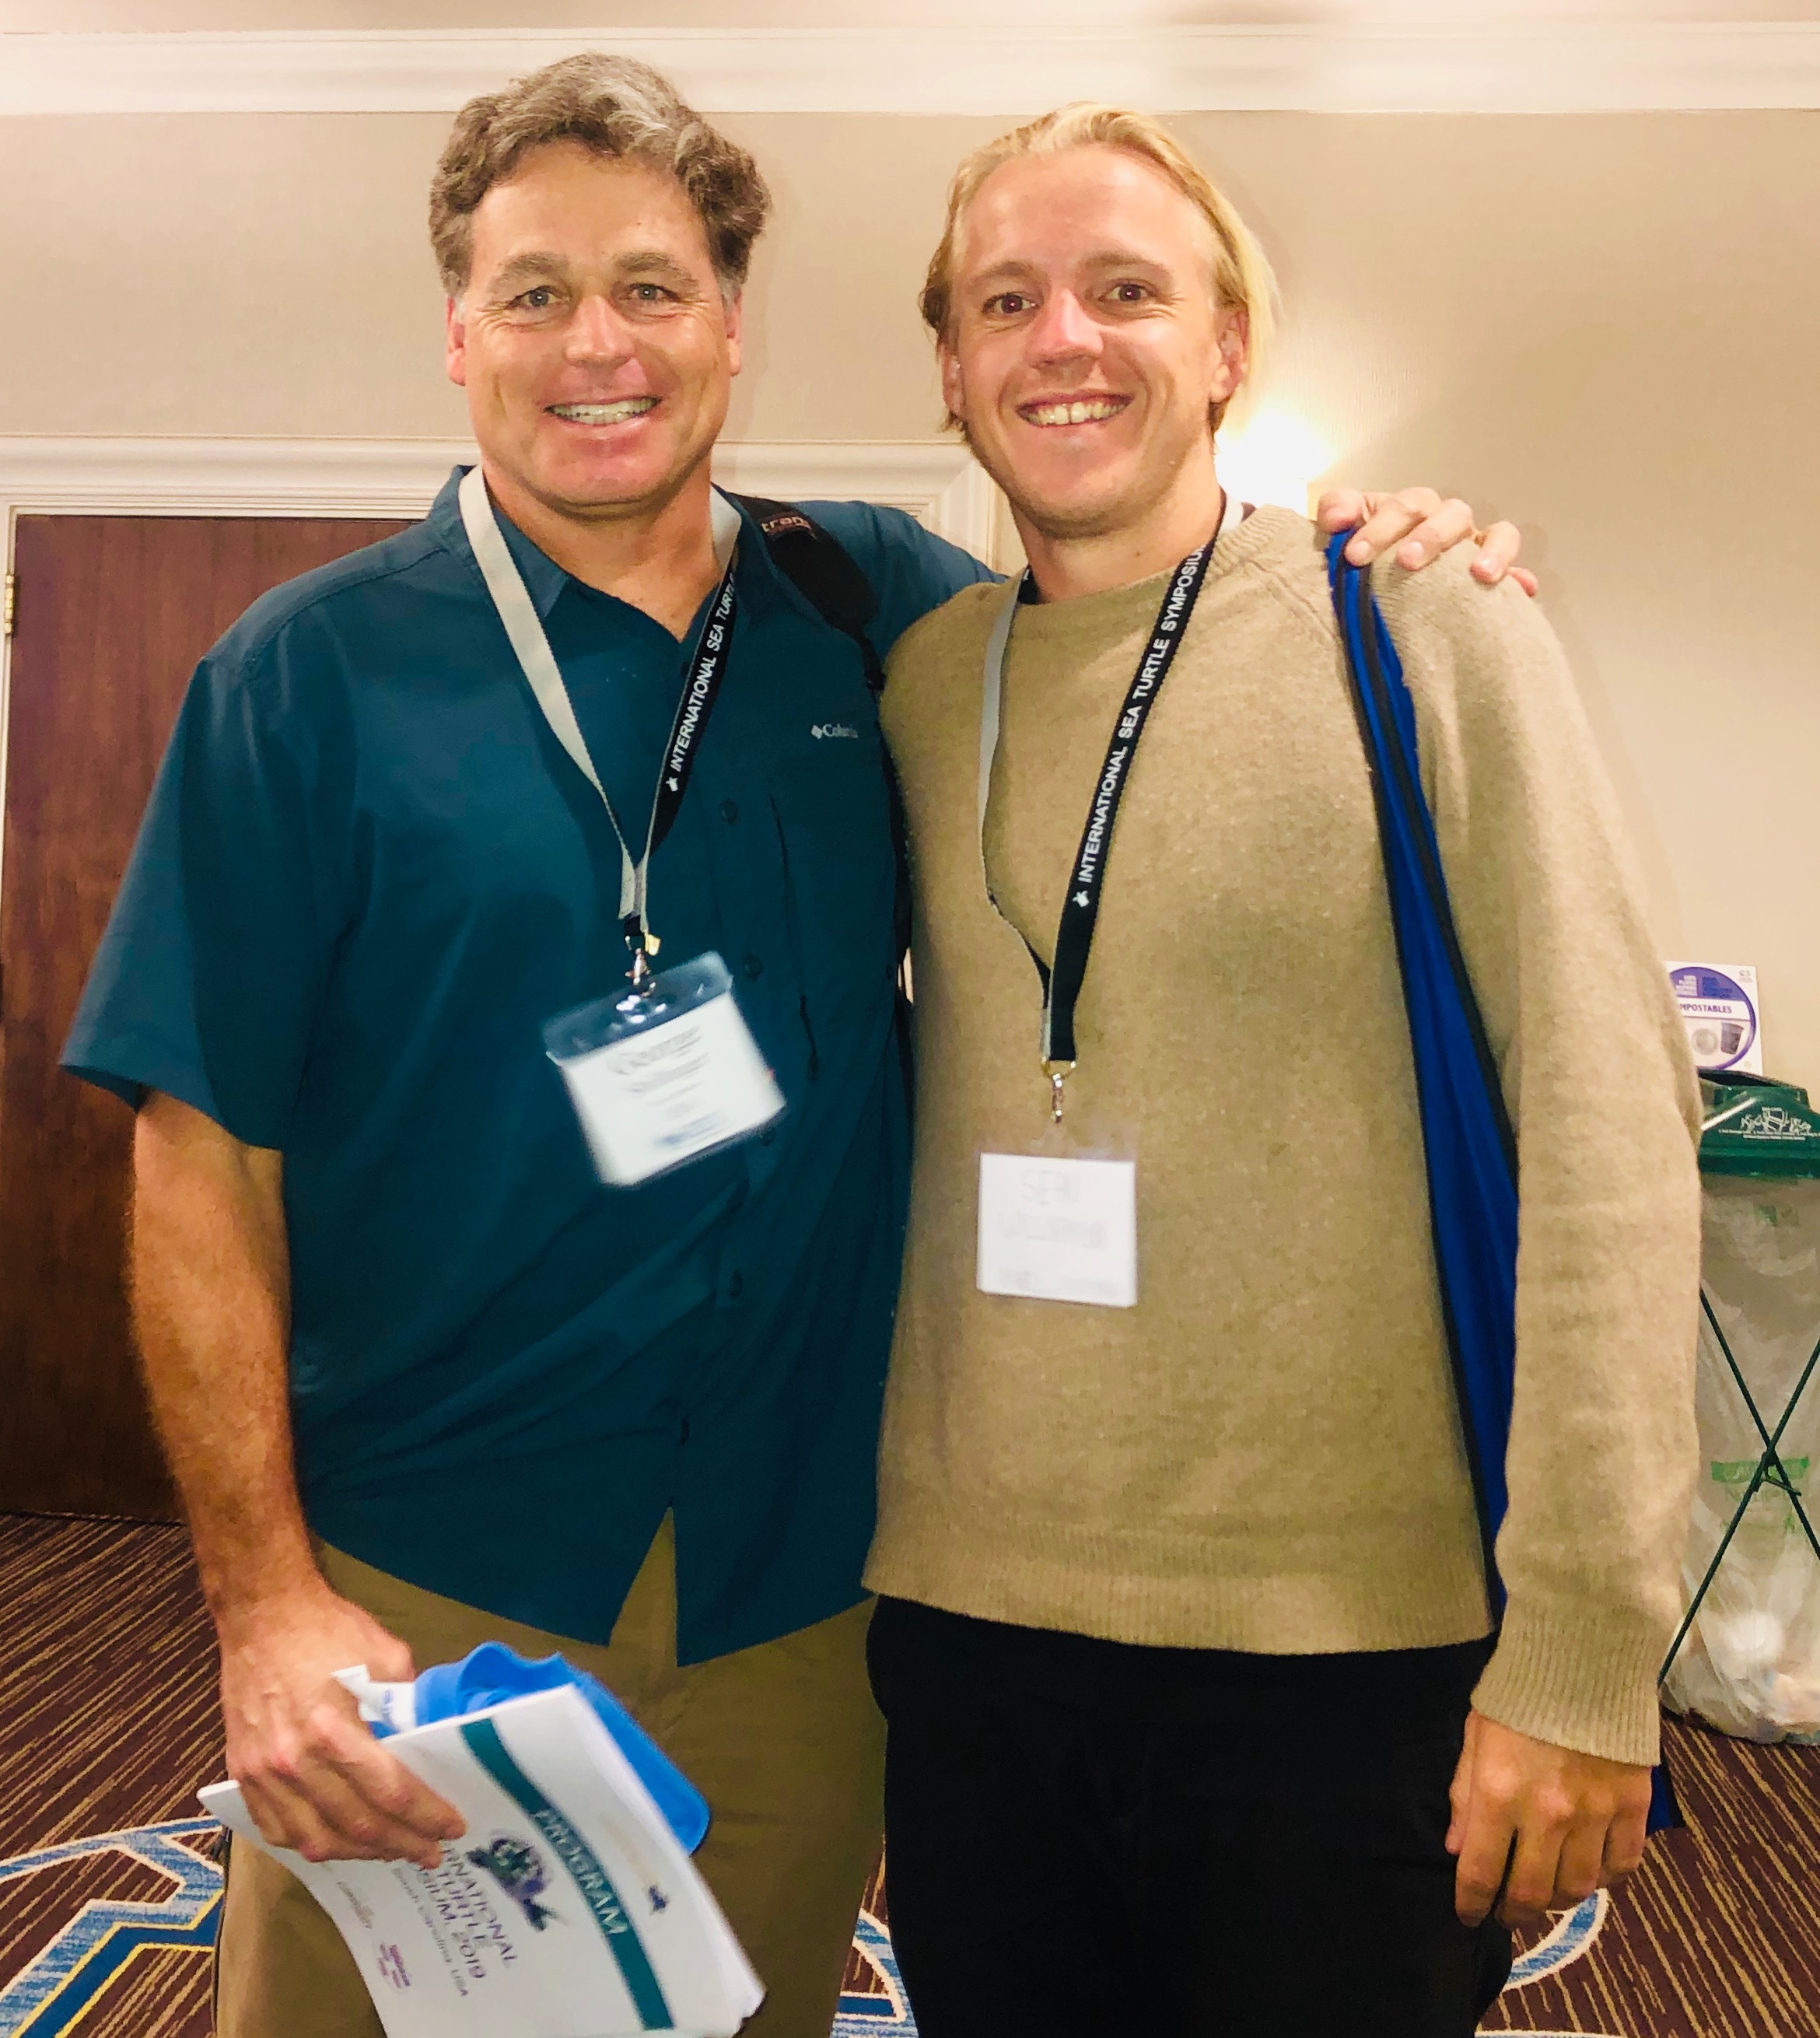 Upwell's Executive Director, George Shilinger, with Project Scientist, Sean Williamson, at the International Sea Turtle Symposium in February 2019.